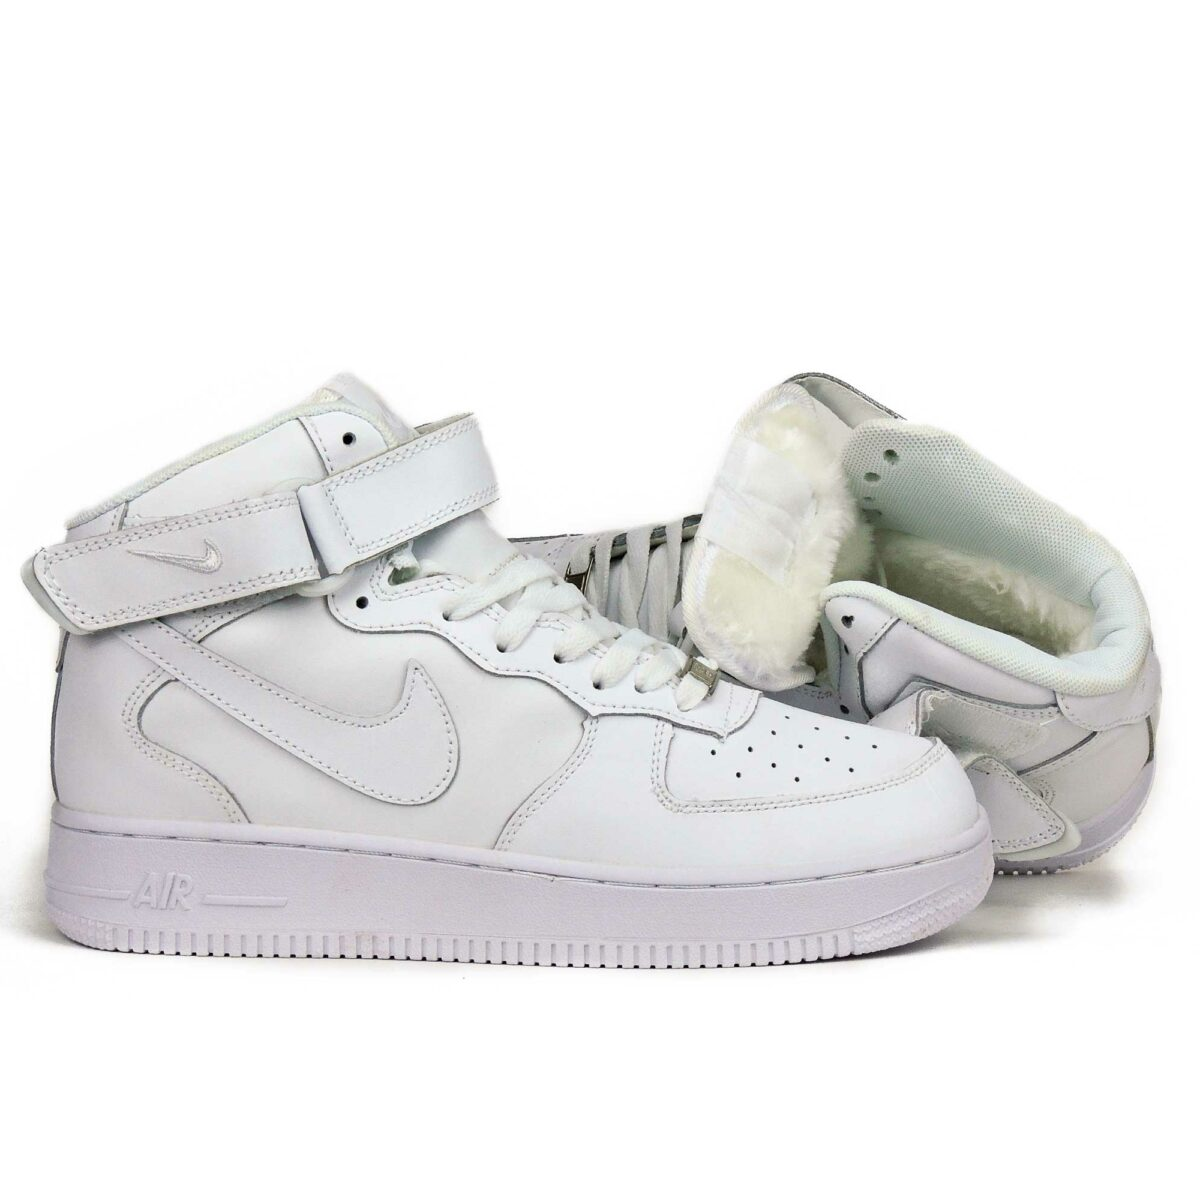 nike air force 1 white mid winter 334031_611 купить